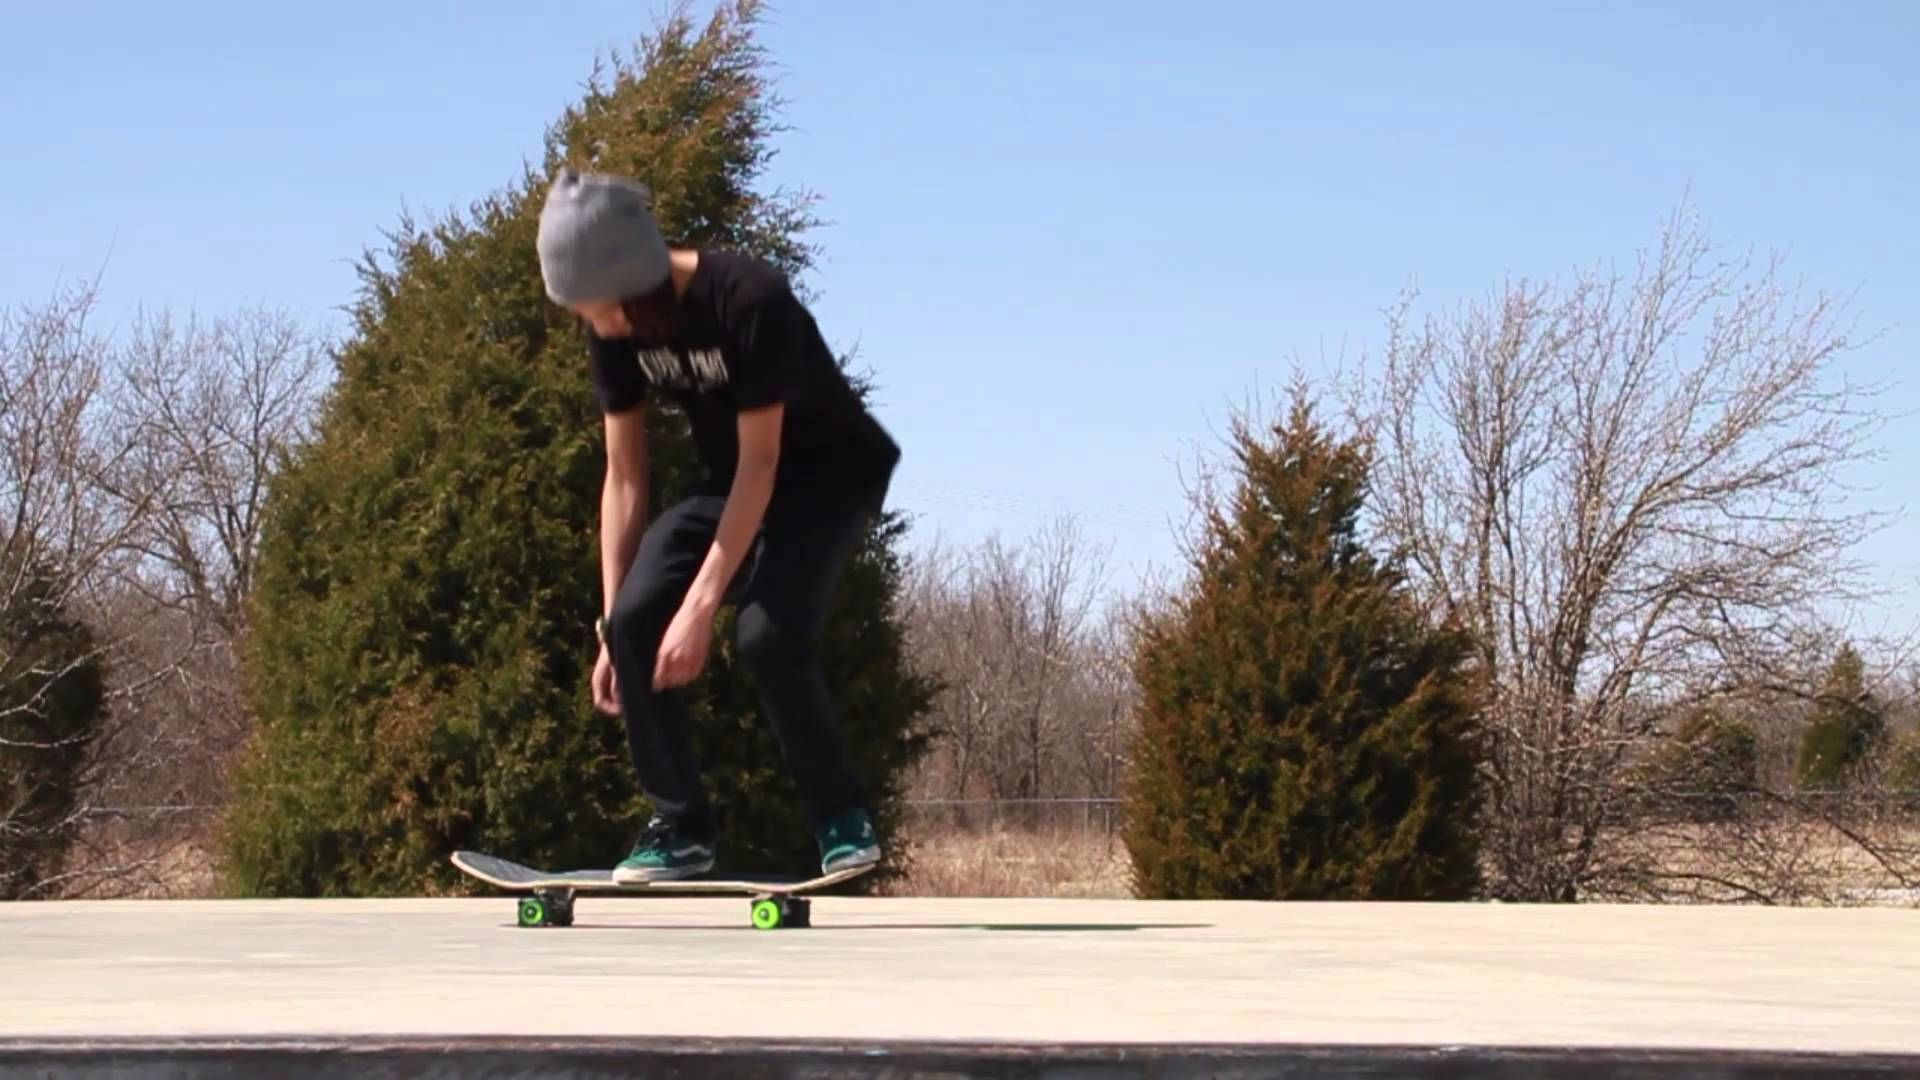 How To Heelflip The Easiest Way With Skatertrainer Part2 Skate Gif Skateboard Ollie